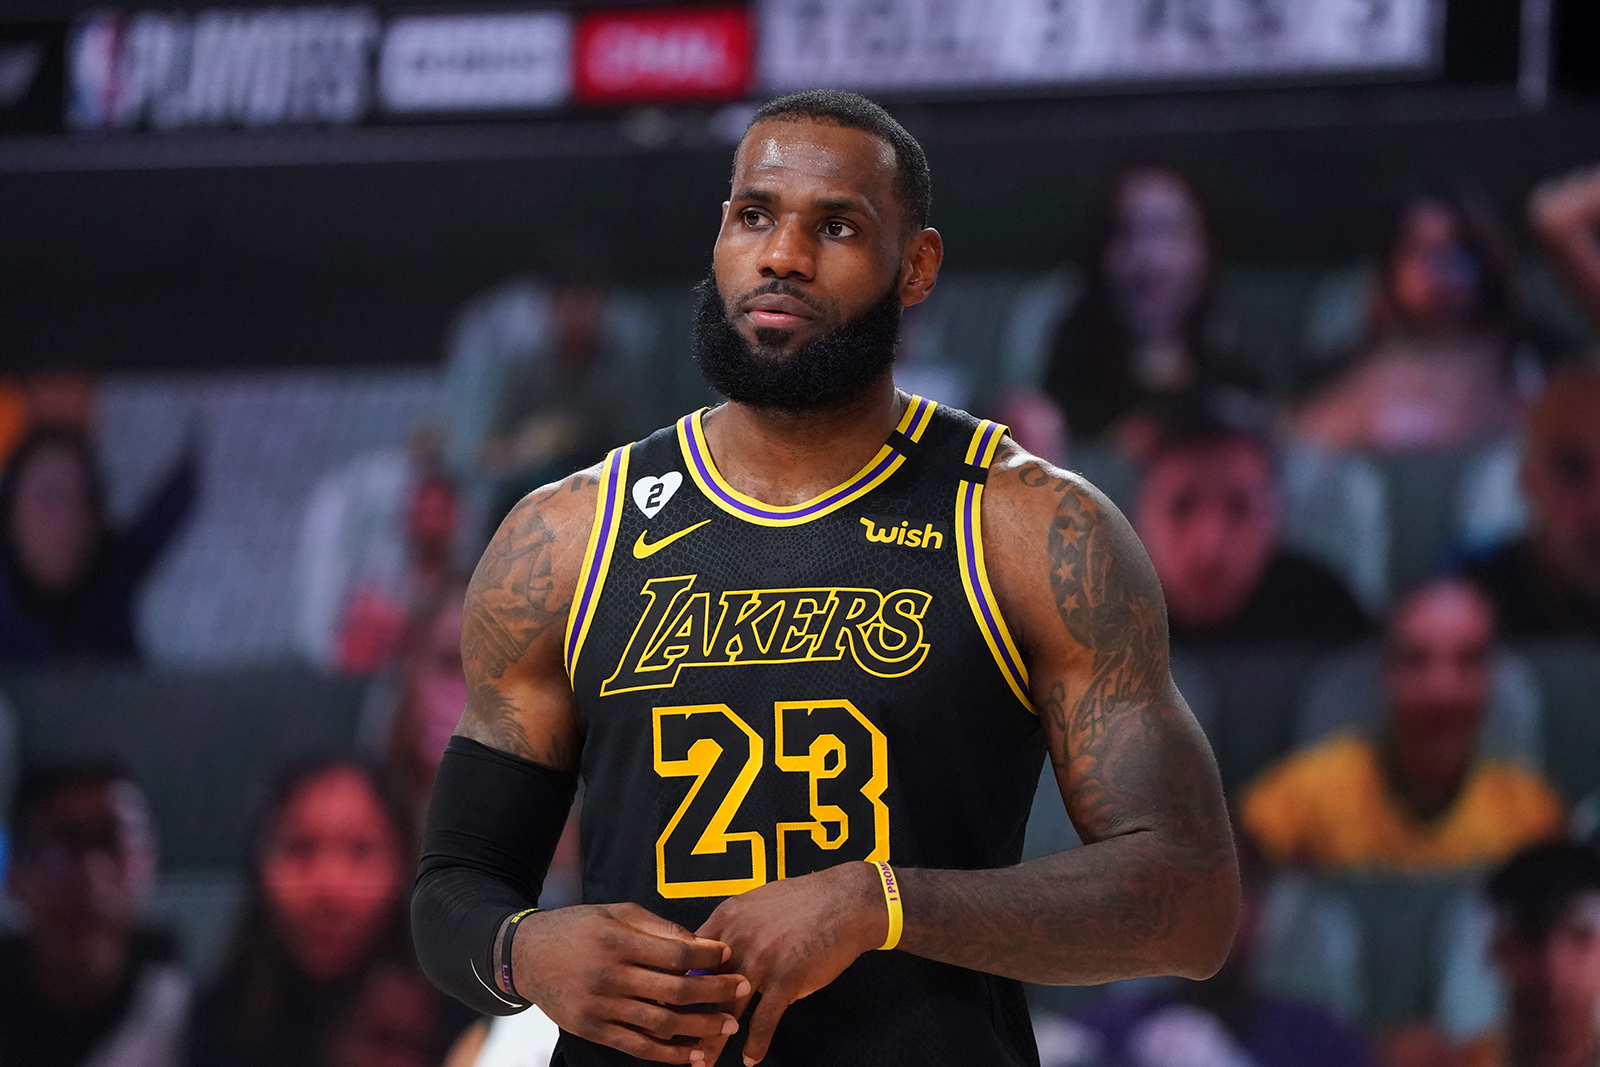 LeBron James of the Los Angeles Lakers looks on during a game against the Denver Nuggets during Game Two of the Western Conference Finals of the NBA Playoffs at AdventHealth Arena in Orlando, Florida, on September 20.